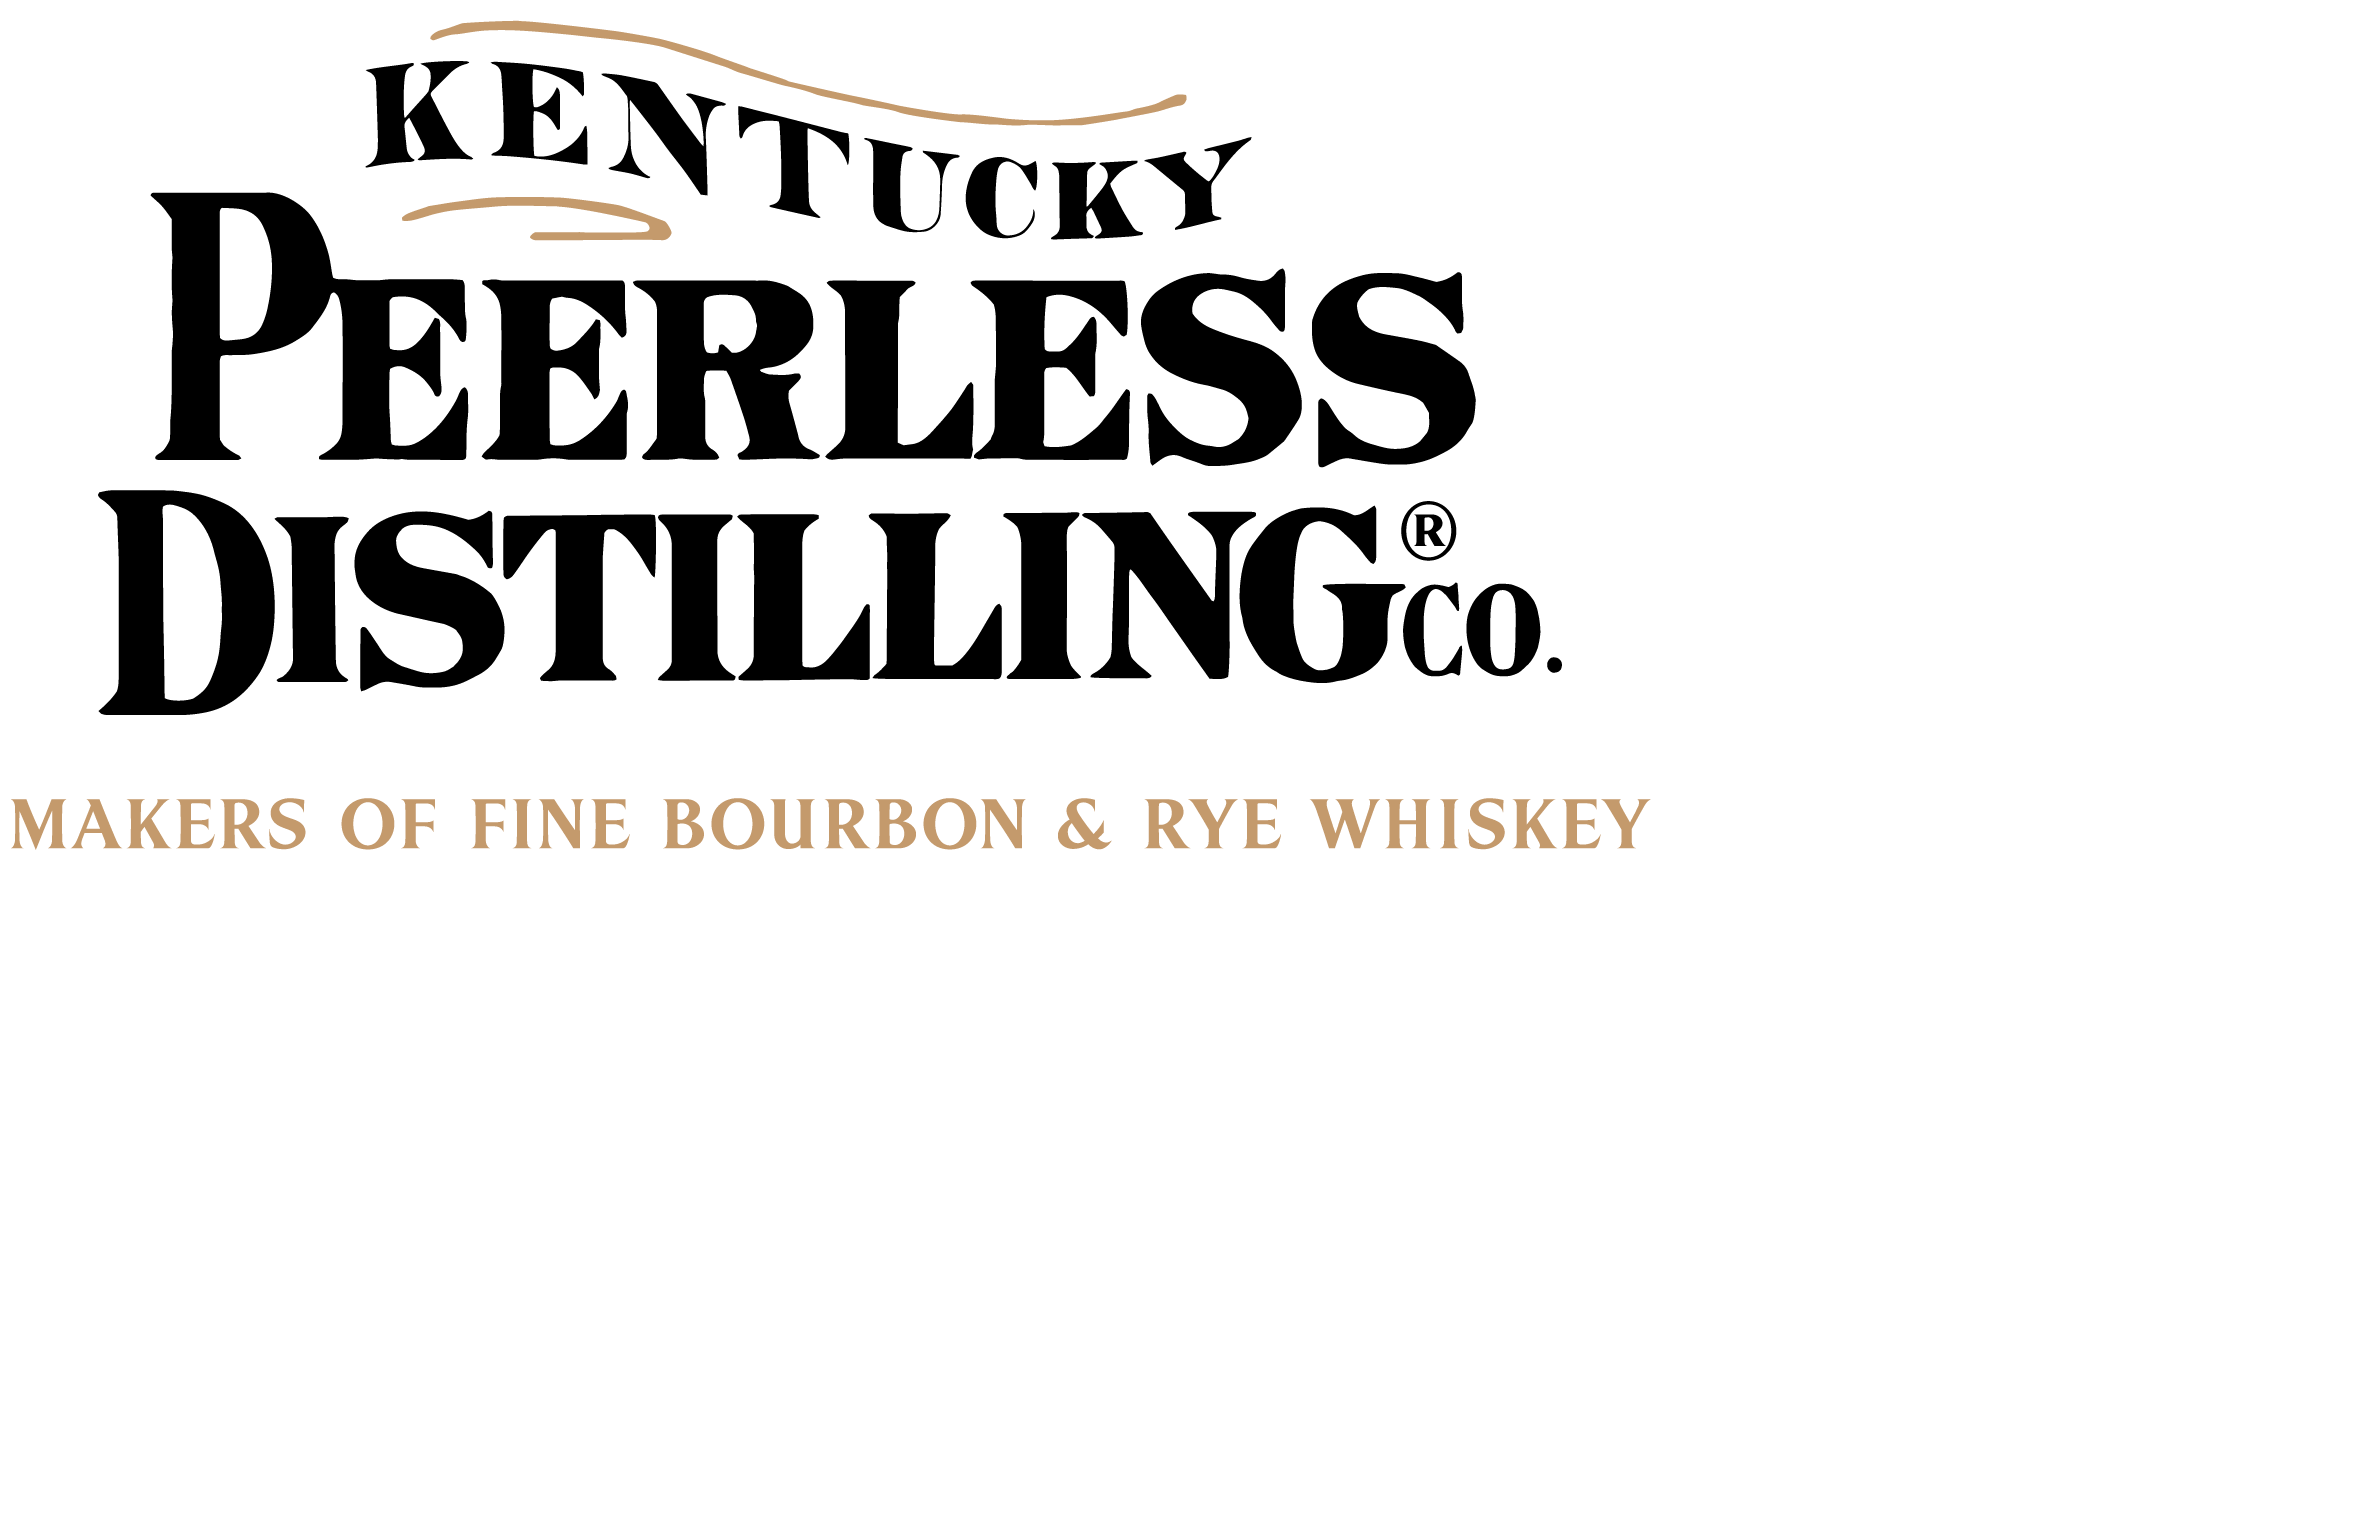 History and Hooch - Includes a self-guided General Admission visit to the Frazier History Museum and a guided tour of Kentucky Peerless Distilling with a tasting for guests. Must be 21 and over. Available Wednesday through Saturday, 10 a.m. to 3 p.m.Minimum: 15 people, $25 per guest